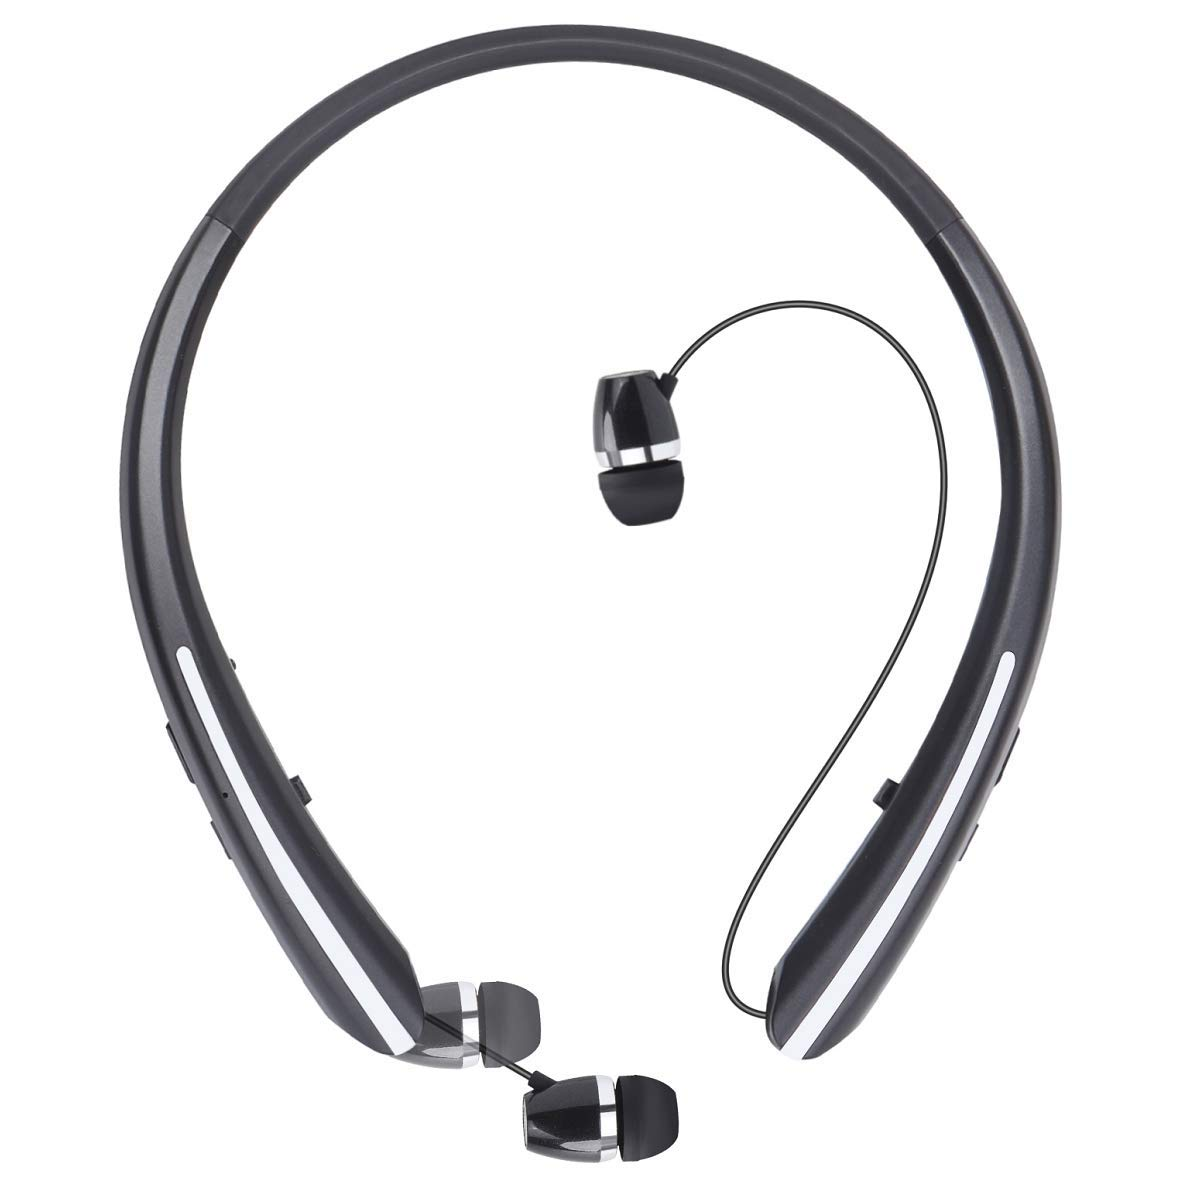 Joyphy Bluetooth Retractable Headphones Wireless Earbuds Neckband Headset Sports Sweatproof Earphones with Mic for iPhone 11 15 Hour Play Time, Black